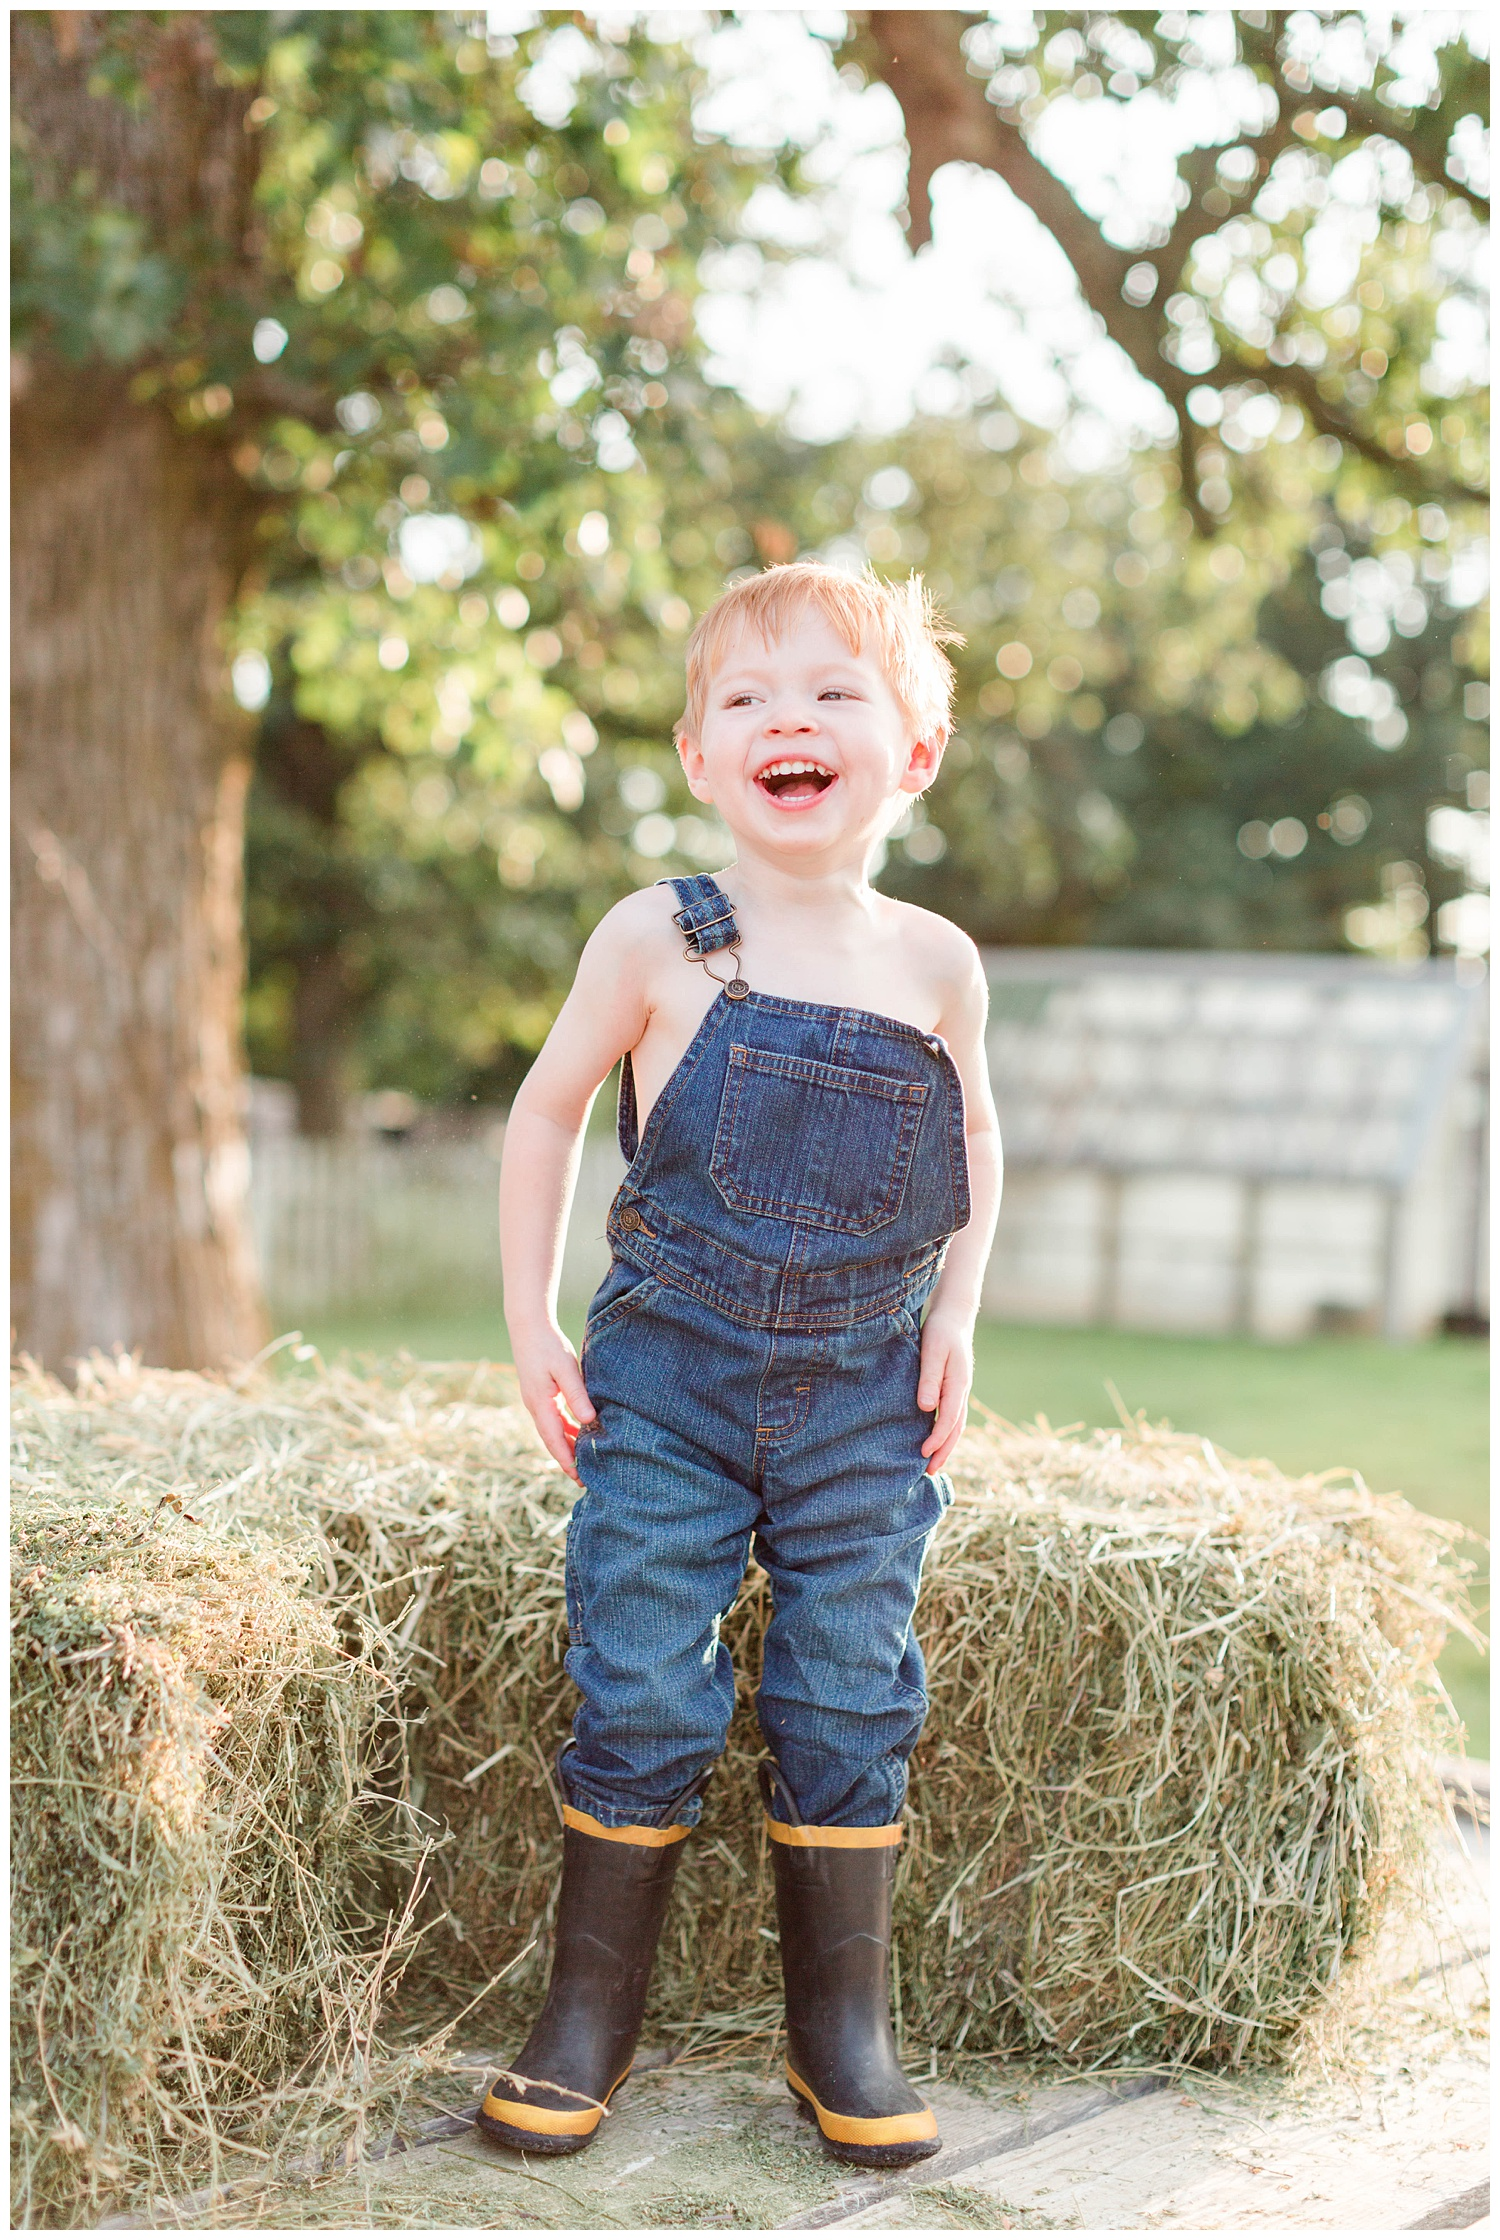 Little farm boy wearing overall bibs and boots laughing on the hay rack with hay bales | CB Studio